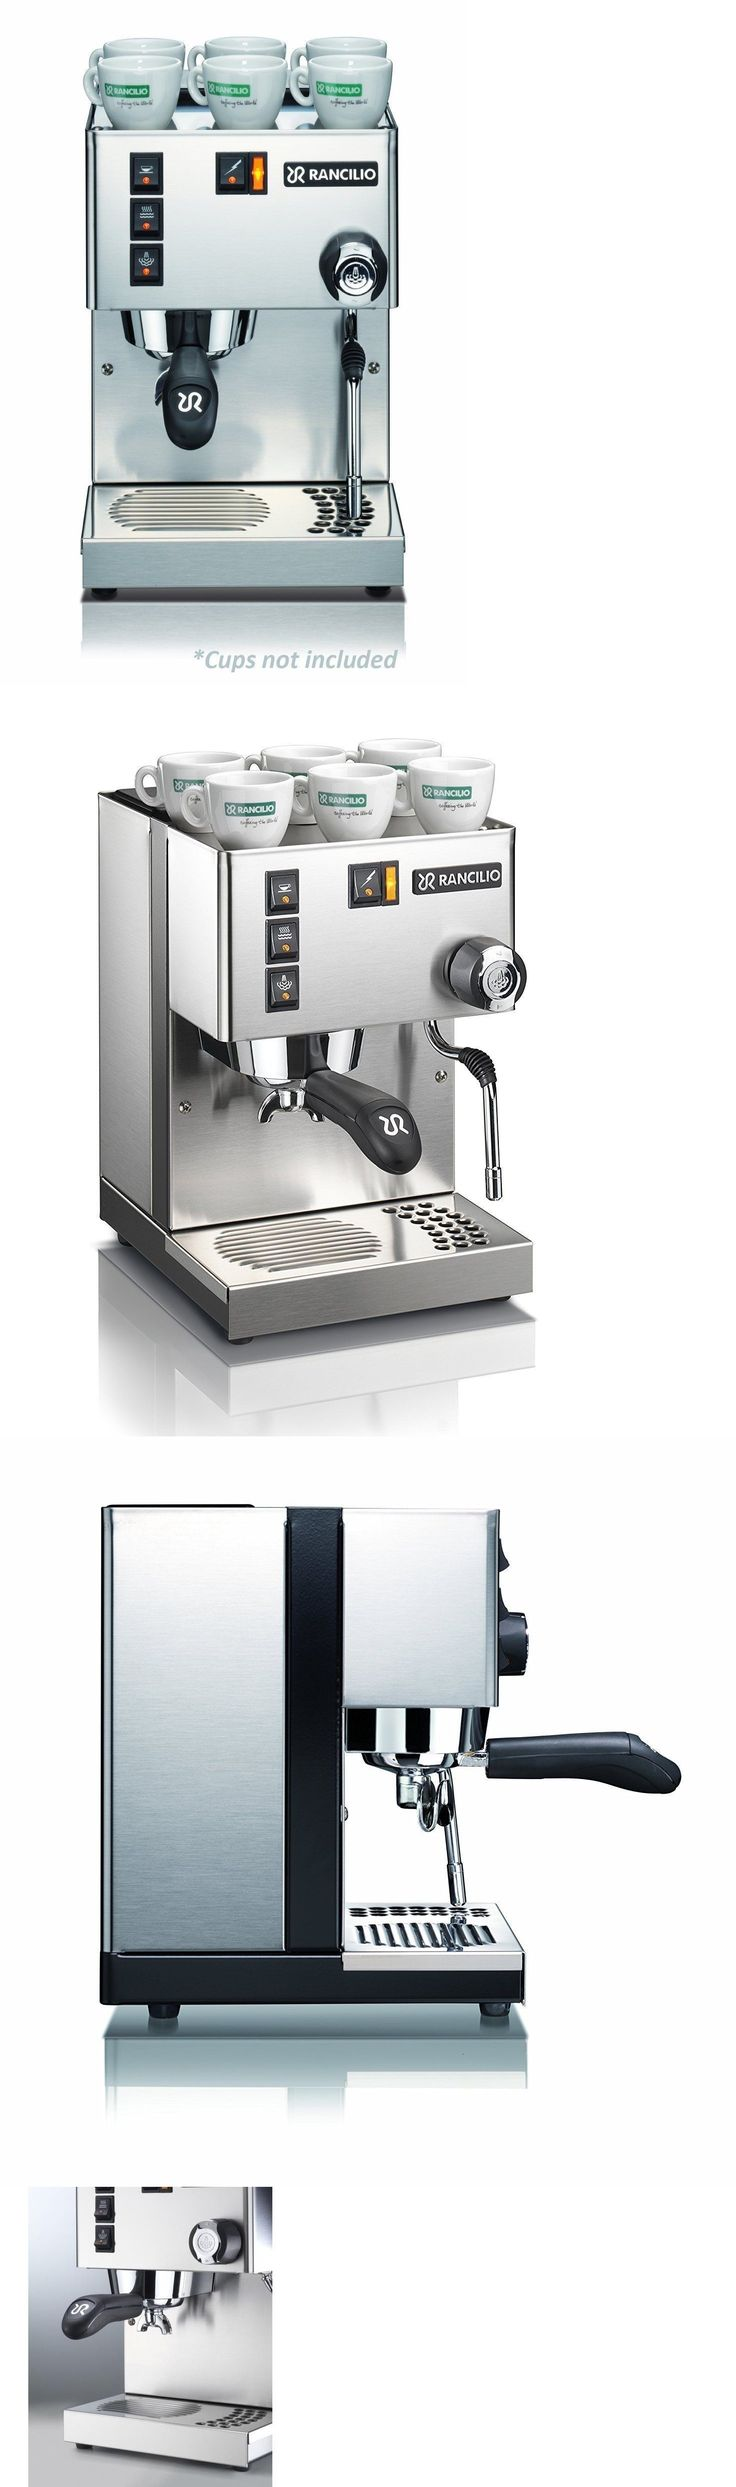 Small Kitchen Appliances: Rancilio Silvia M V5 Espresso Machine **New** Stainless Steel, Authorized Seller -> BUY IT NOW ONLY: $685 on eBay!